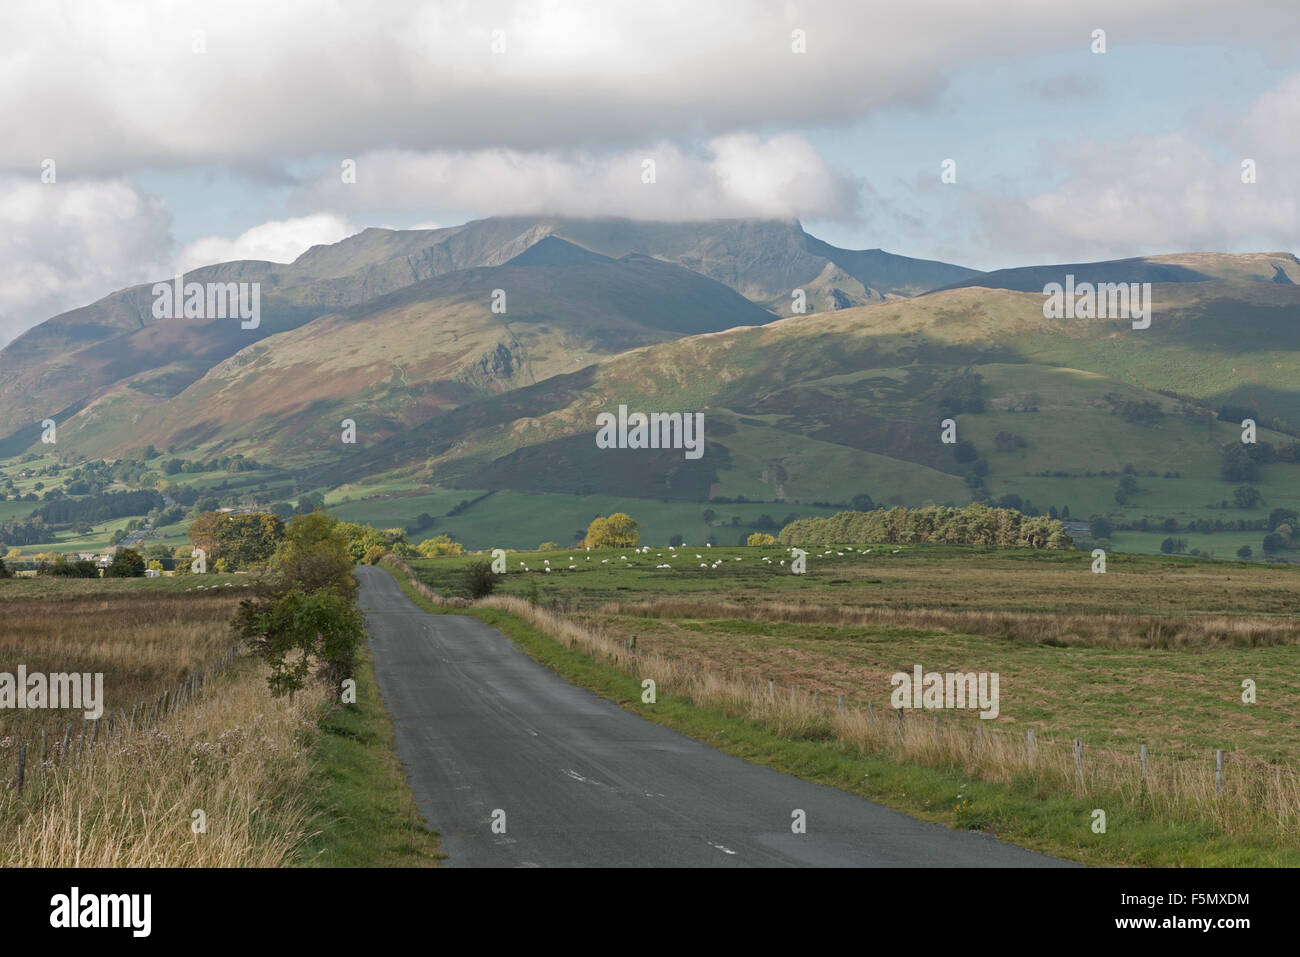 Viste a doppio spiovente o Blencathra cadde in autunno, Lake District, Cumbria, Regno Unito, GB Immagini Stock